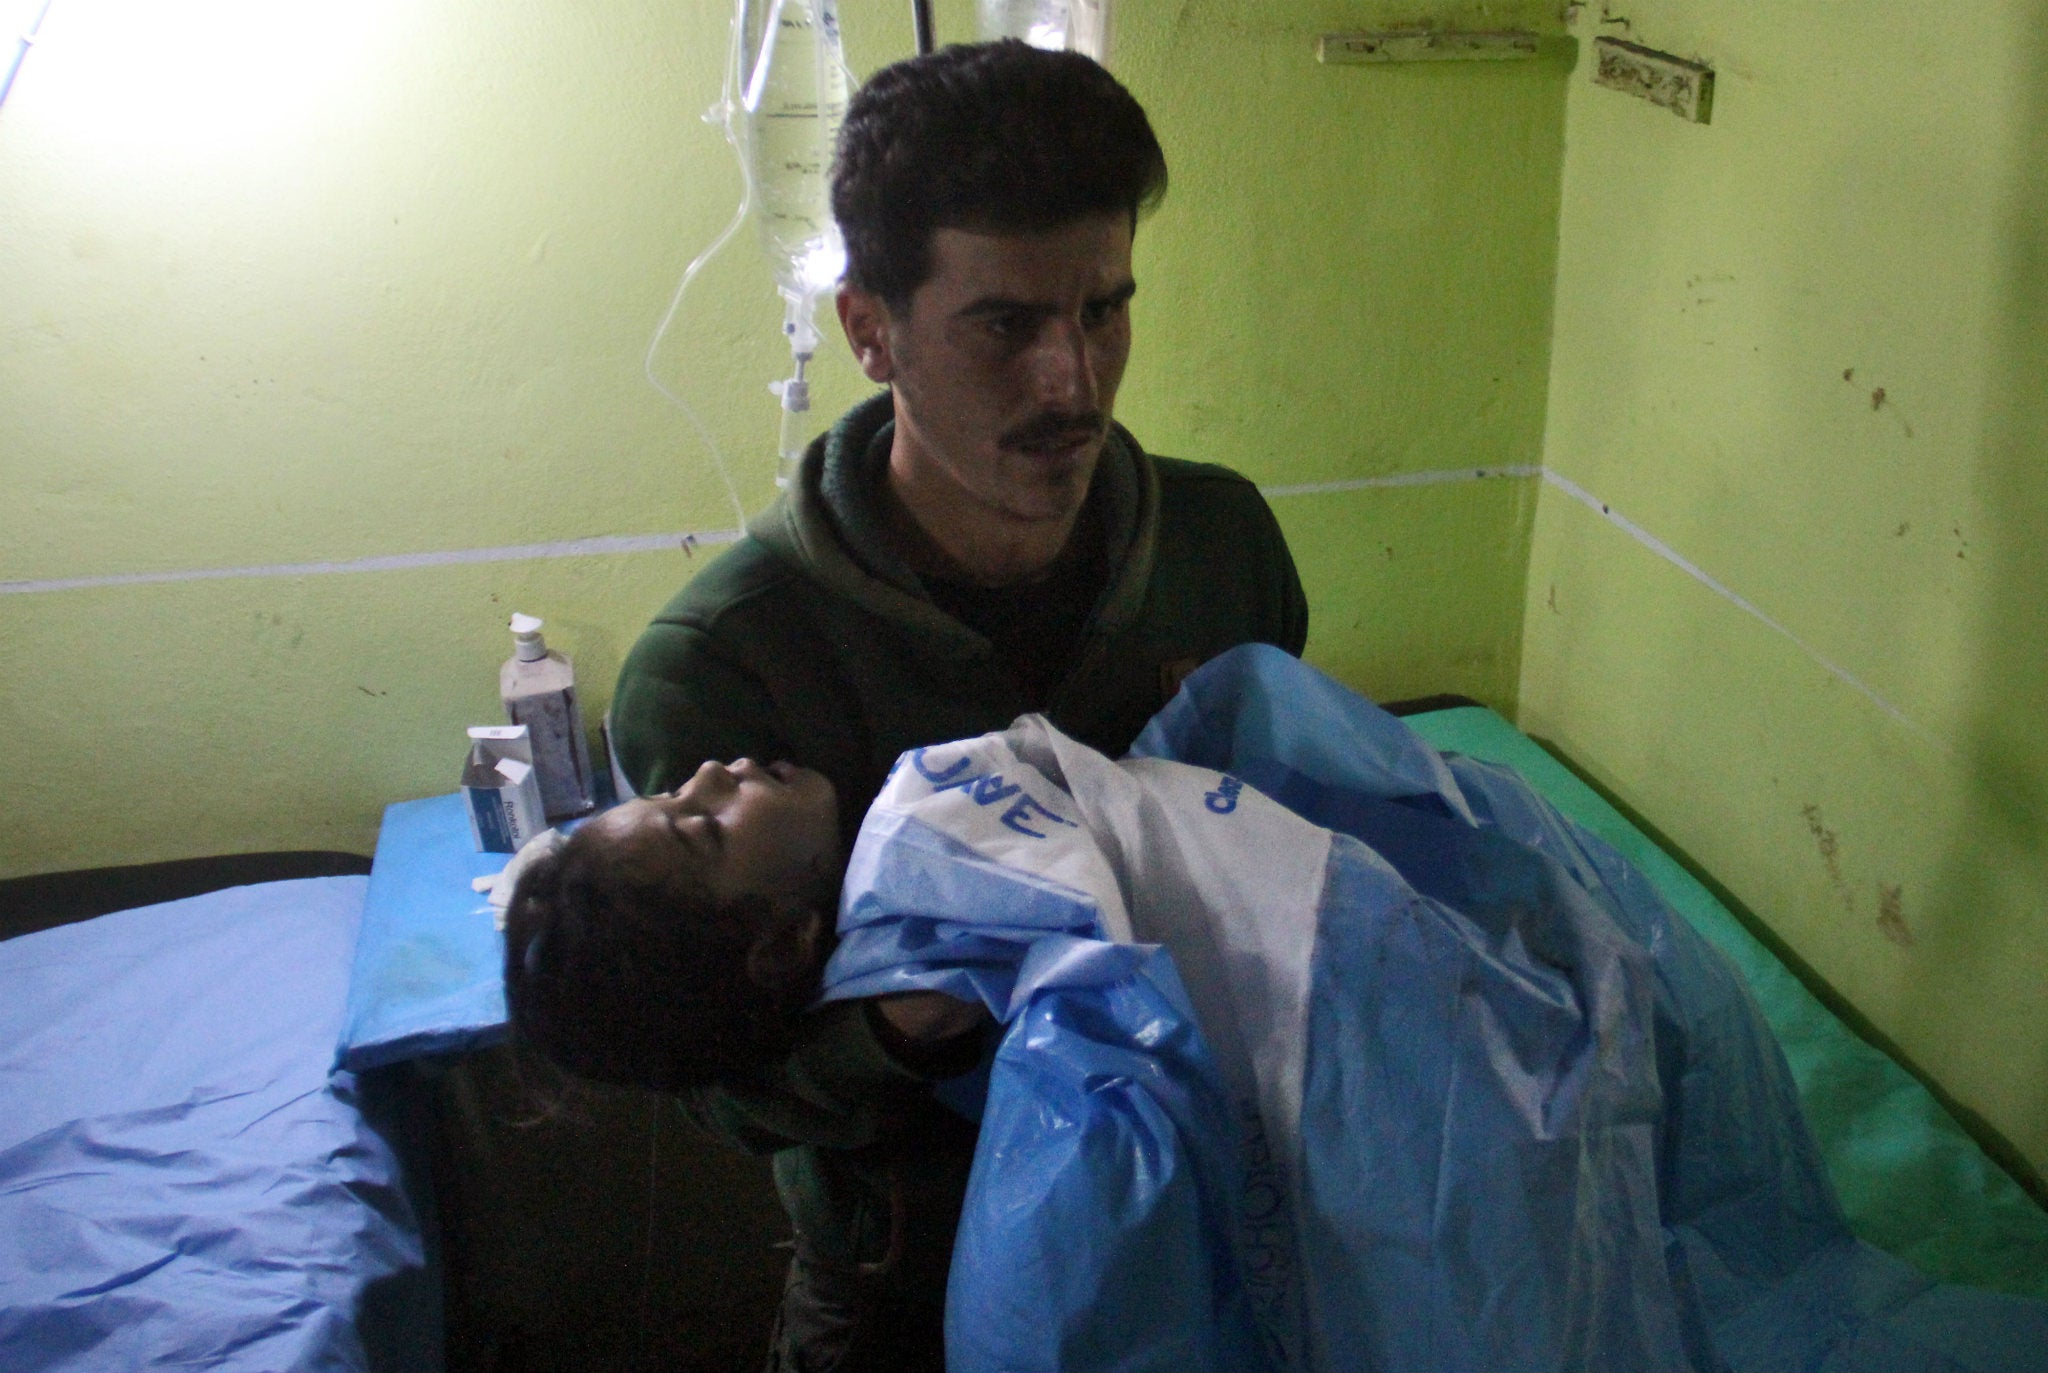 France says it has proof Assad carried out chemical attack that killed 86